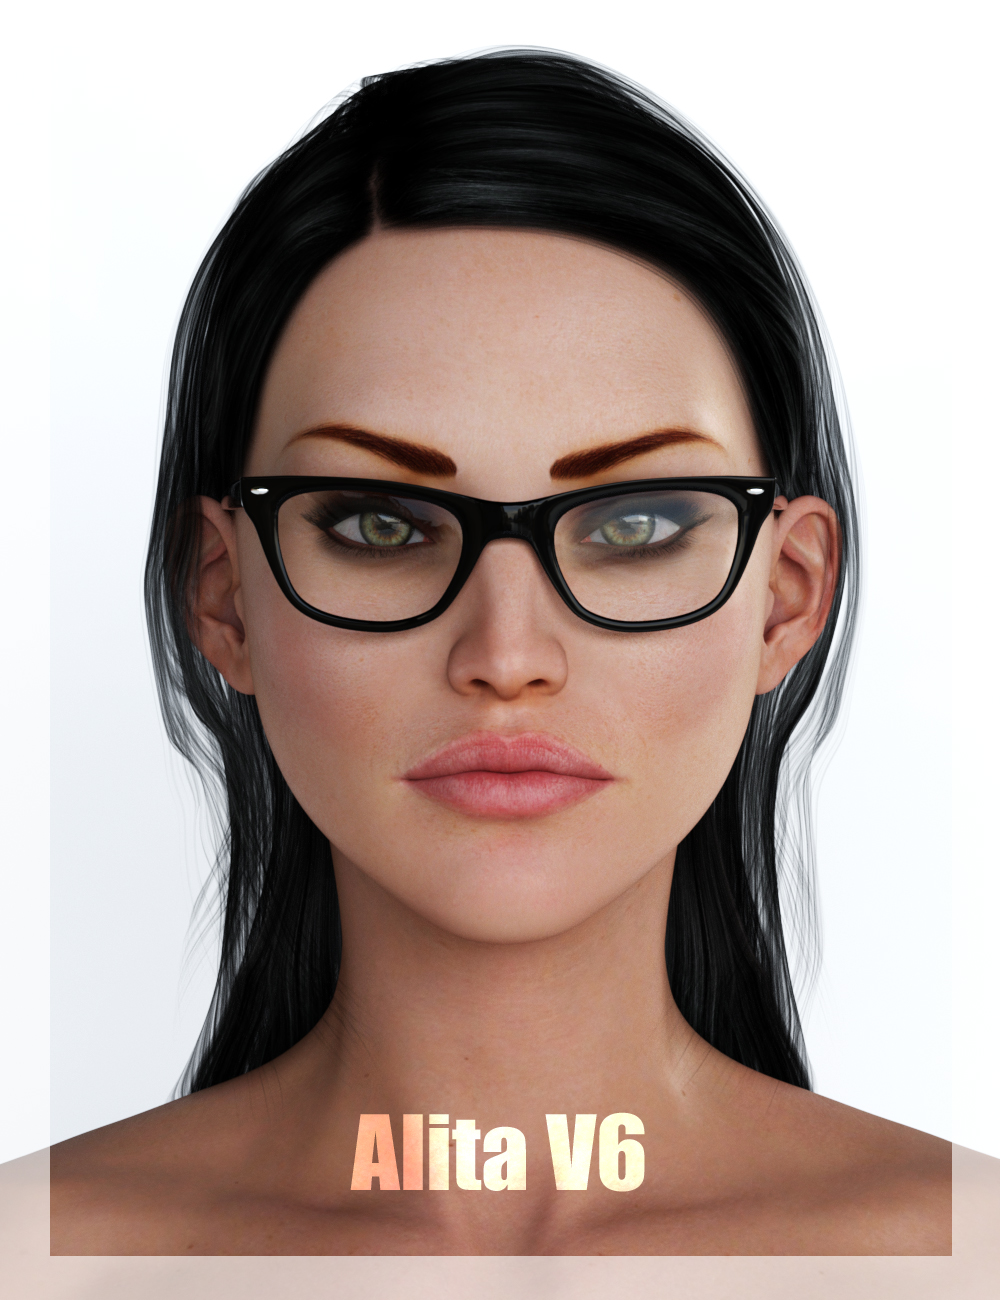 Alita V6 by RetroDevil